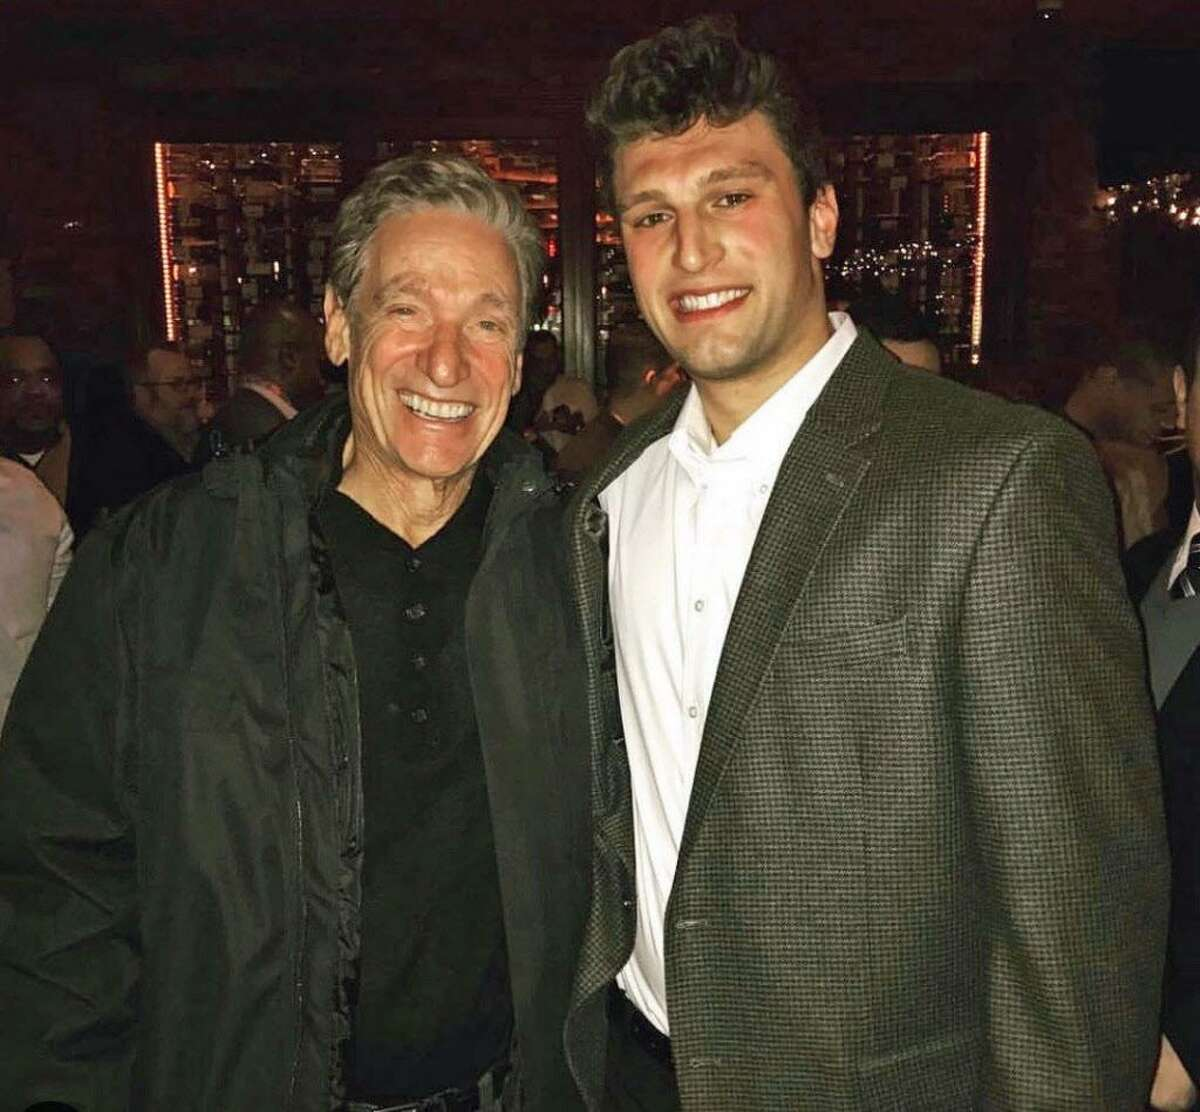 """Maury Povich, left, said Boornazian is a natural-born and motivated leader. """"Not only does he have the DNA of a true competitor, he has a clear understanding of the importance of being a team player,"""" he said."""